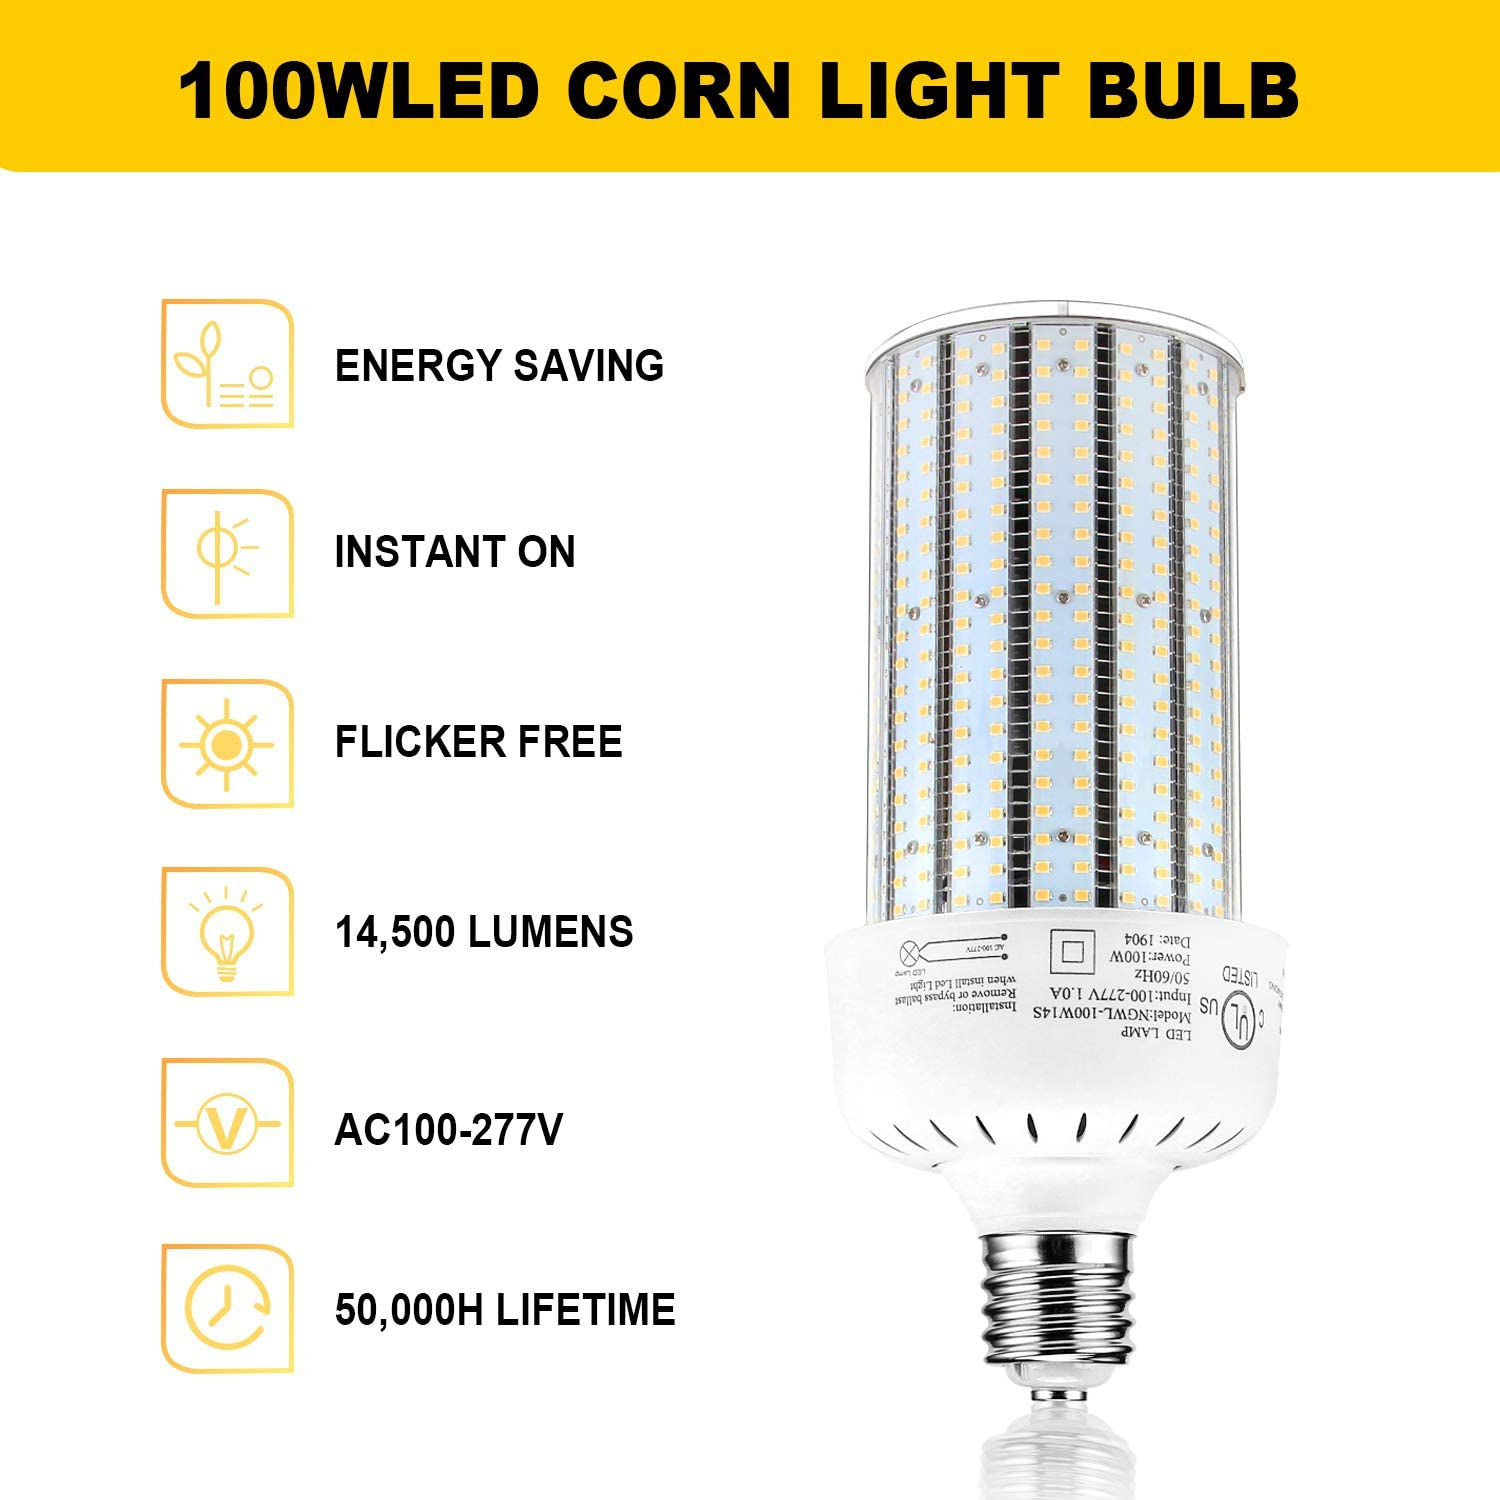 100 Watt Led Corn Cob Light Replace 400w Metal Halide E39 Mogul Base 6000k Daylight 13442lm Parking Lot Street Wall Pack Fixtures High Bay Fixture Ac100 277v Amazon Com